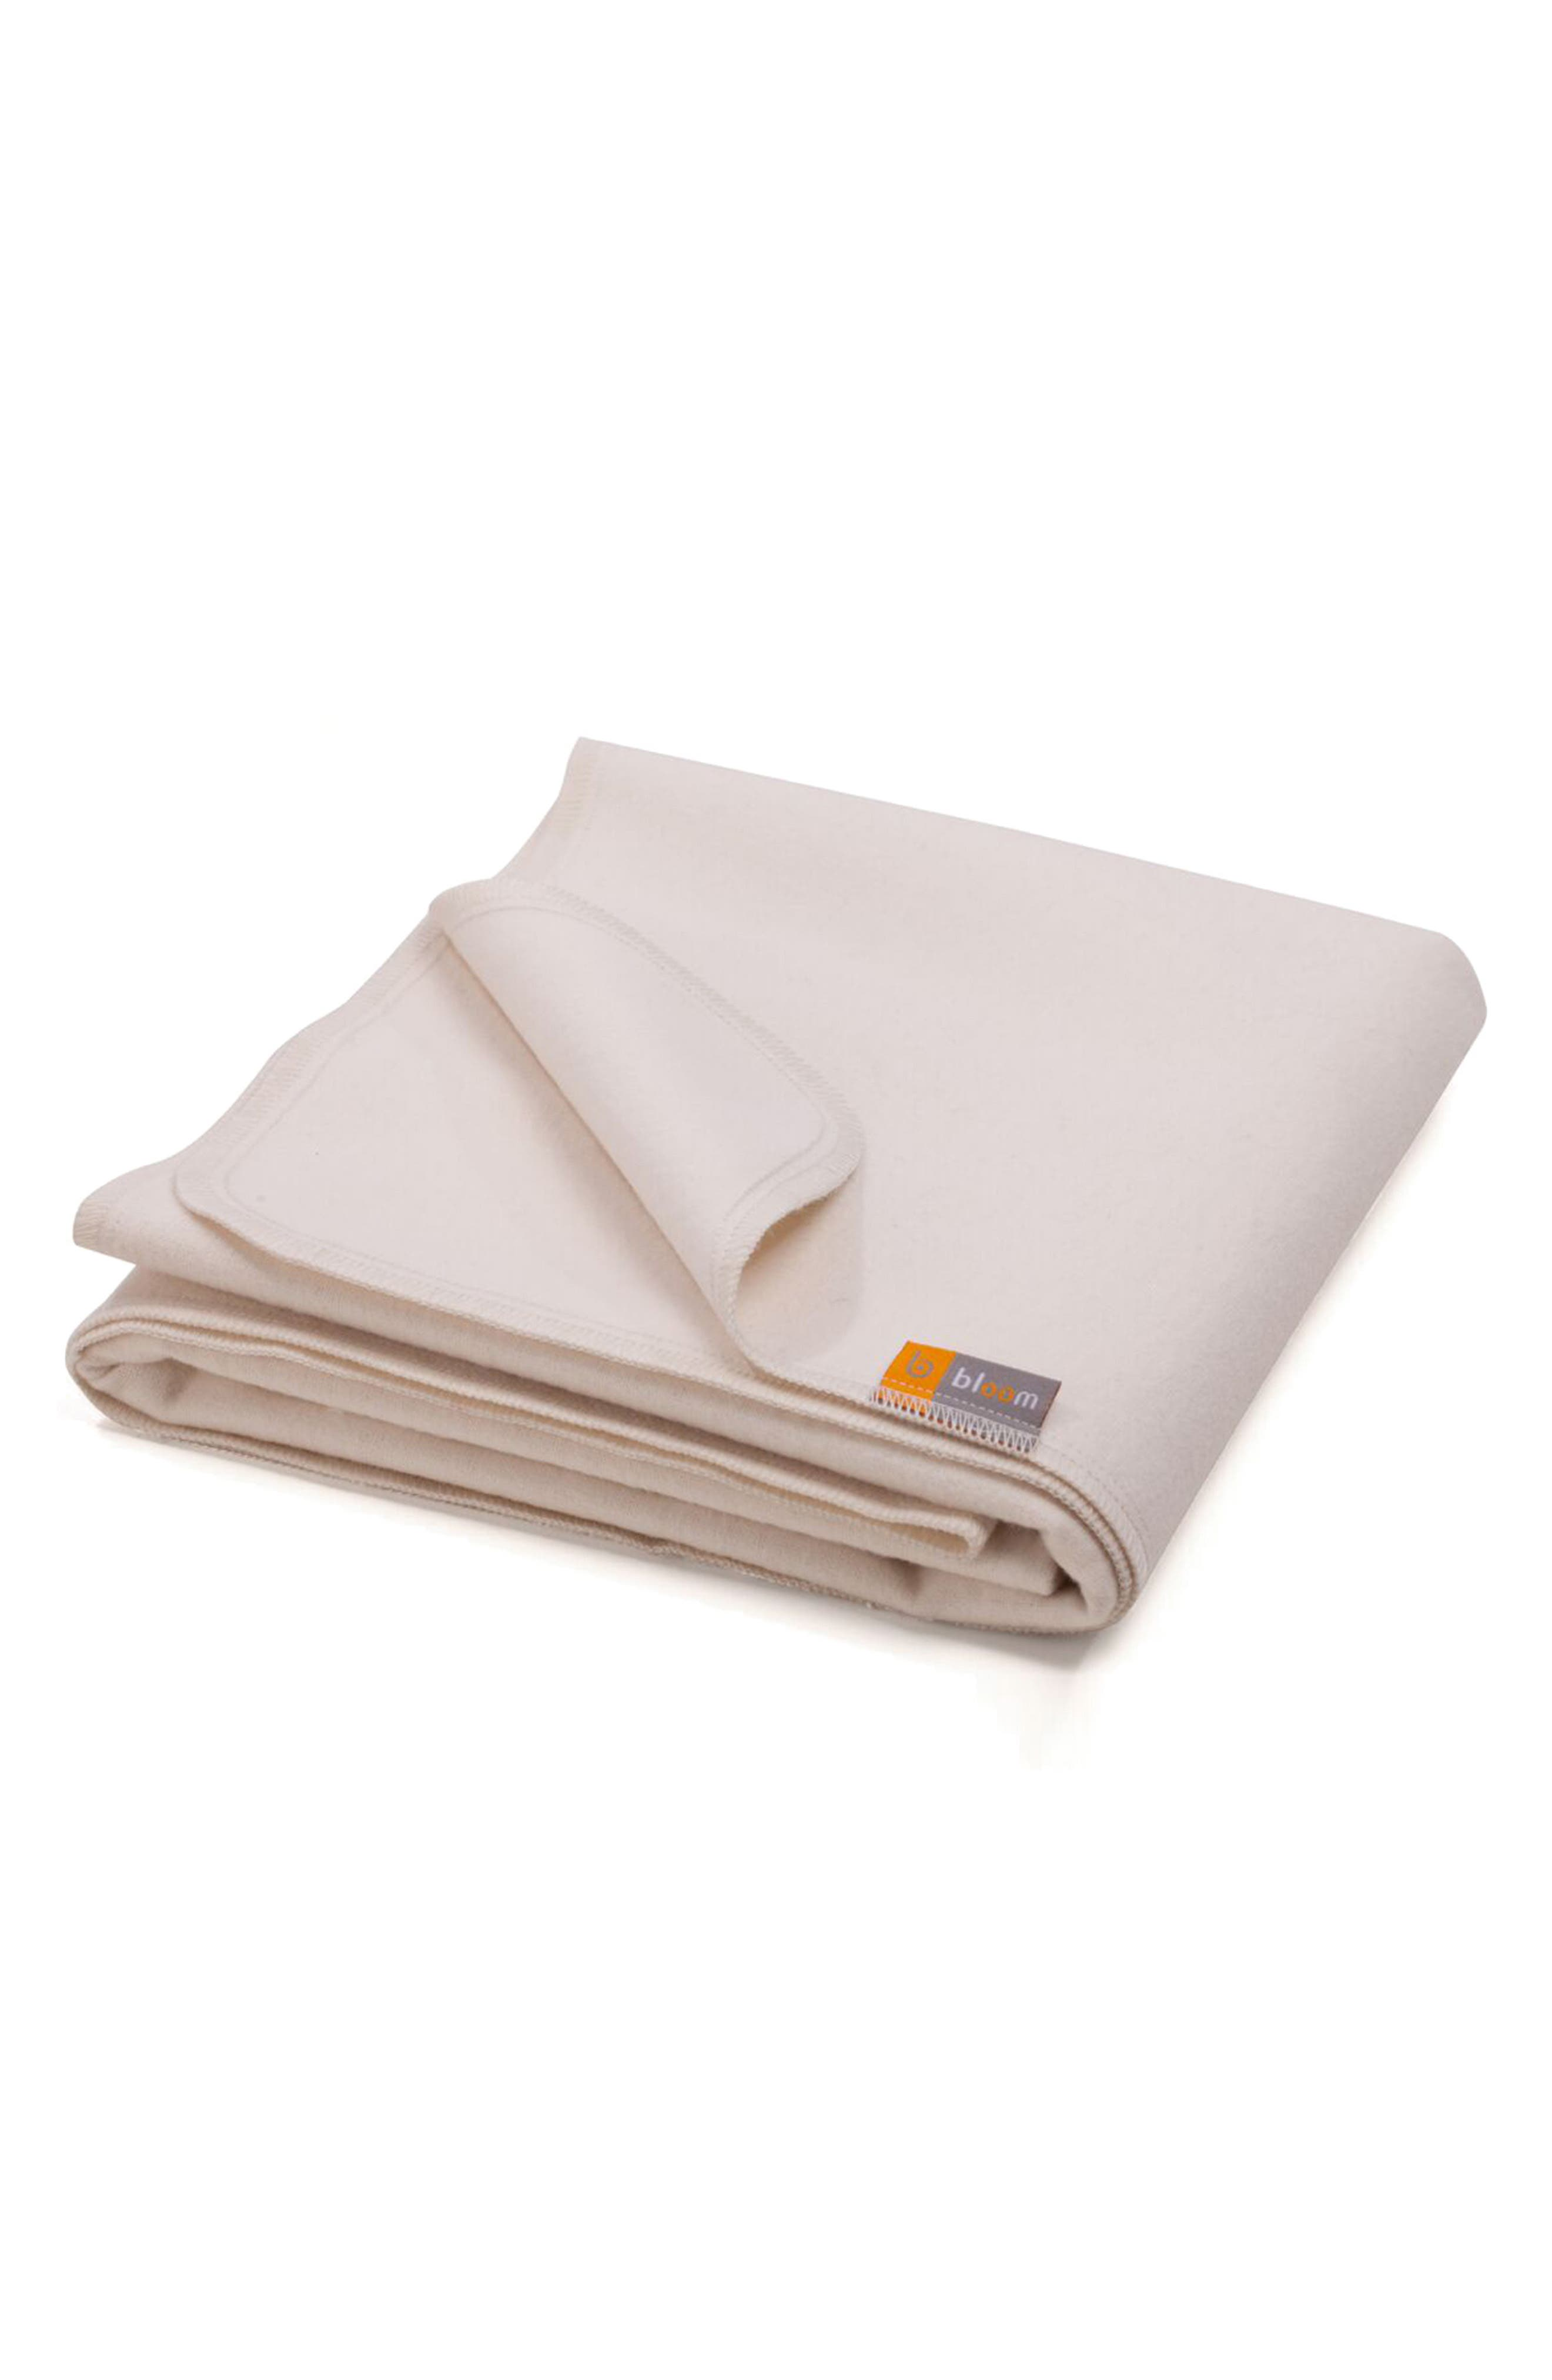 bloom Baby Mattress Protector Pad for Alma Mini Crib